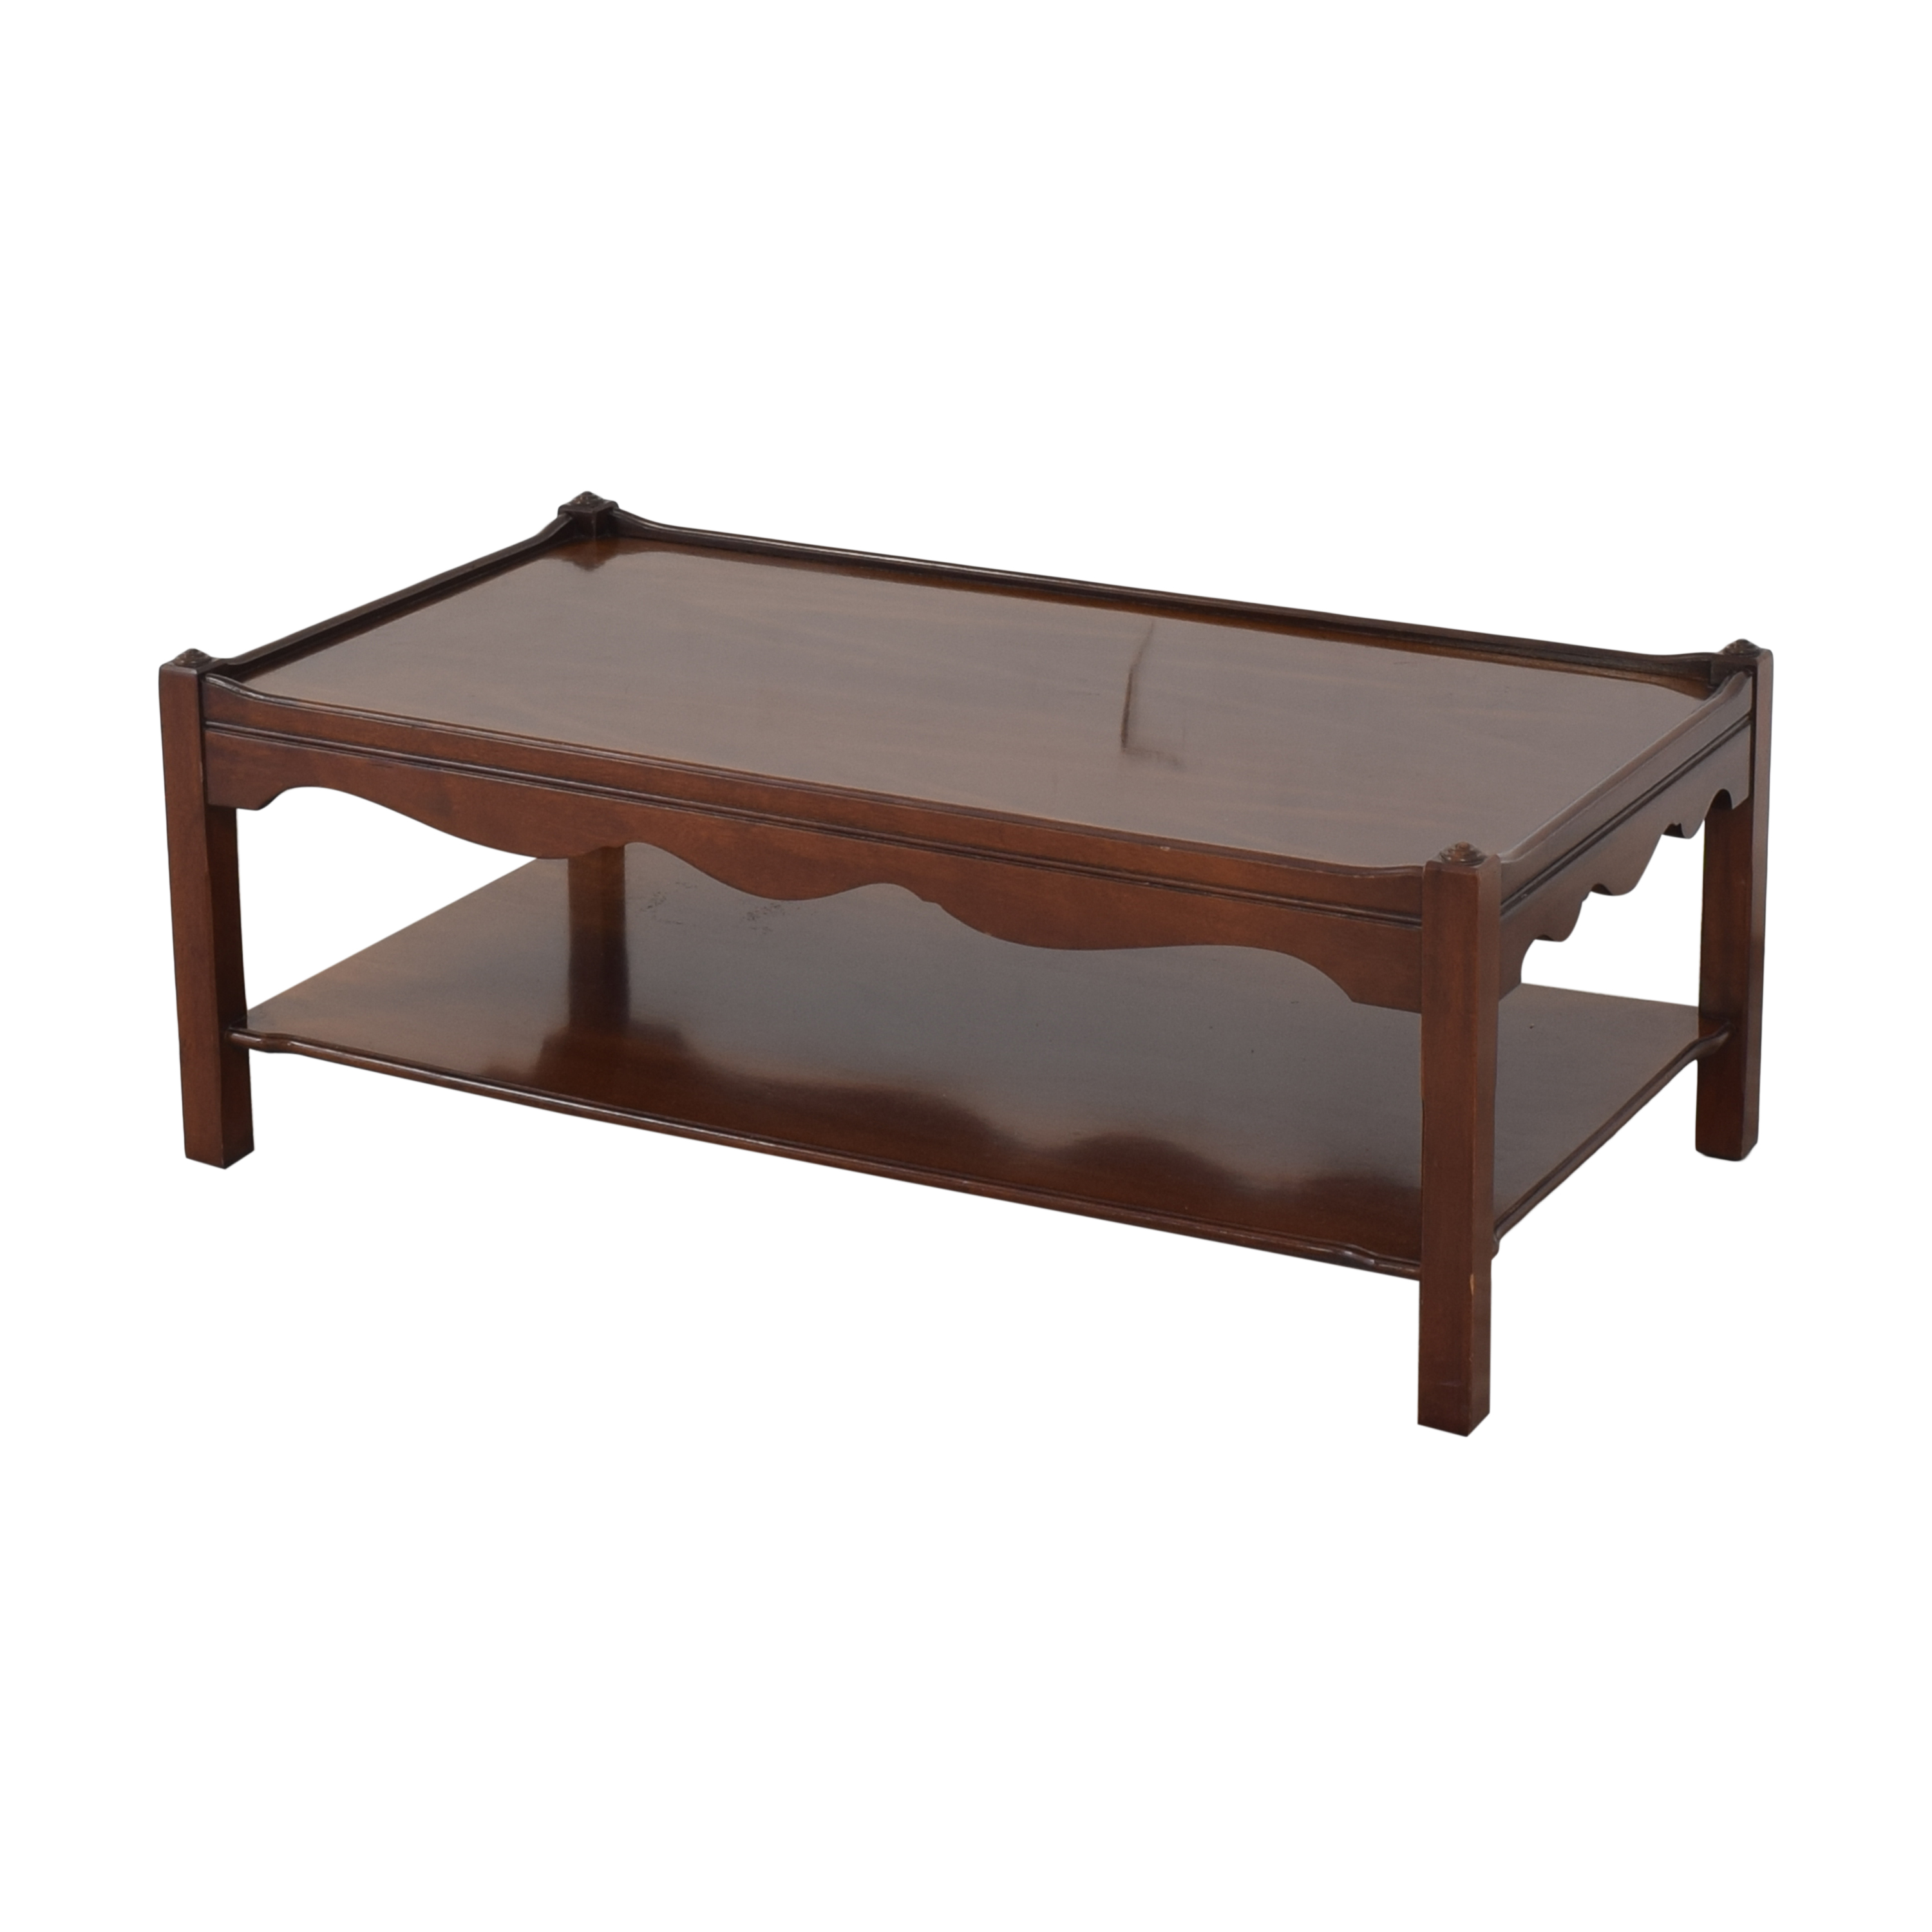 Macy's Tiered Coffee Table / Coffee Tables